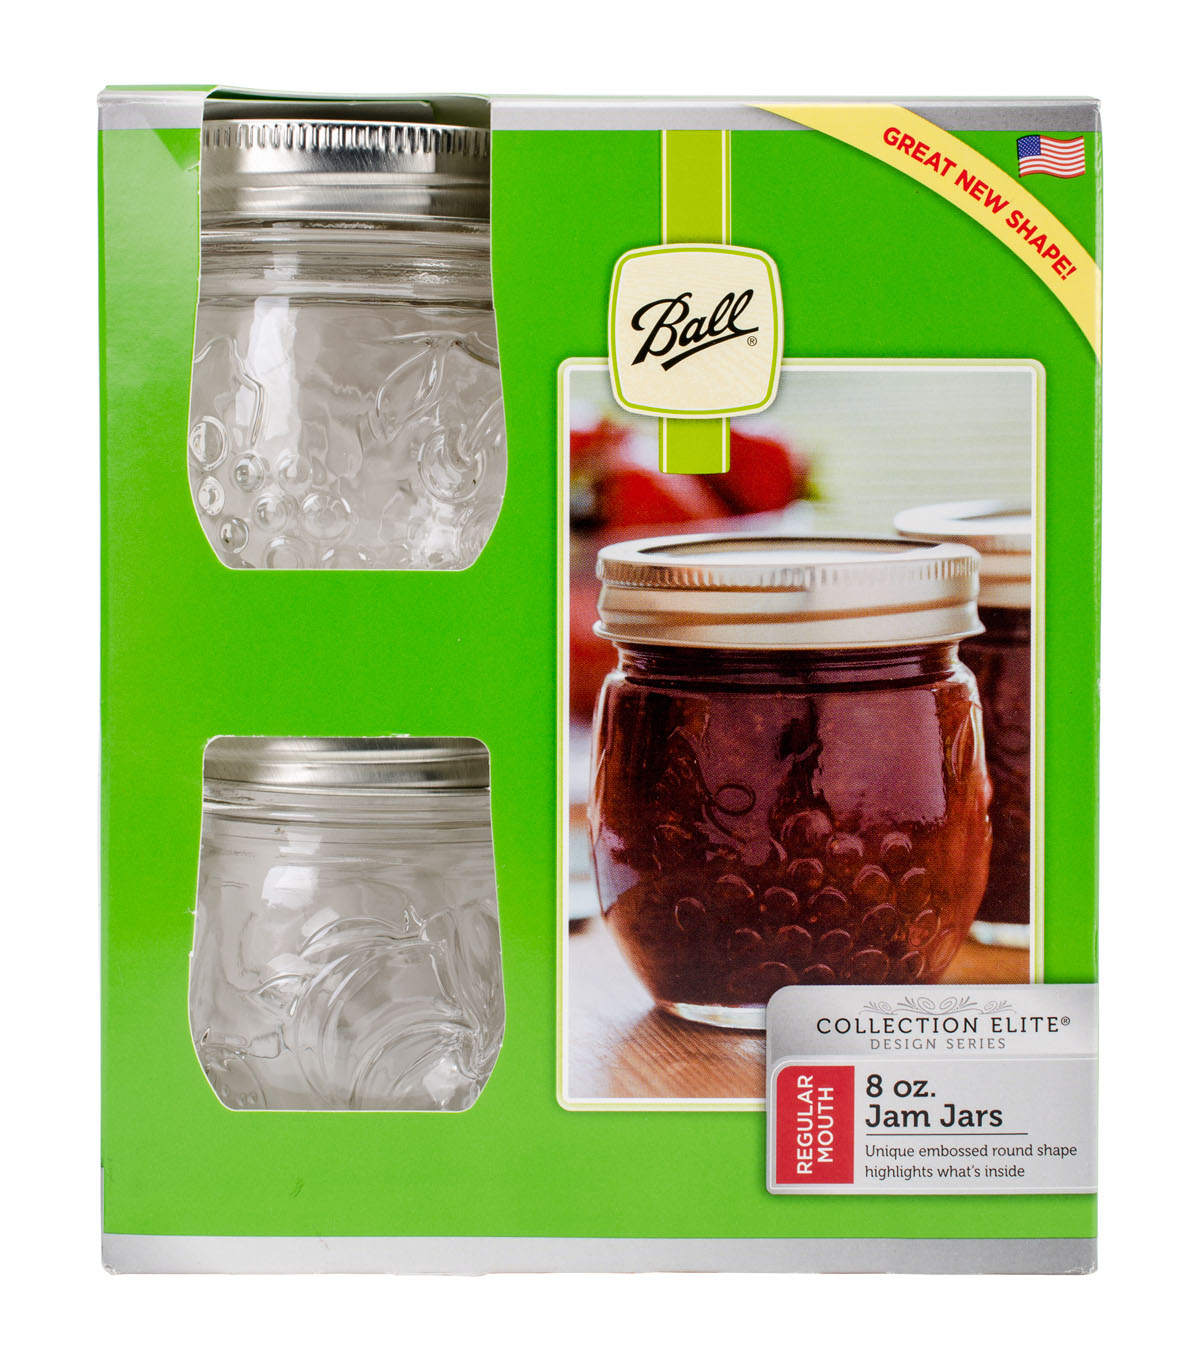 Ball Regular Mouth Jelly Jar-Half Pint - Elite Collection